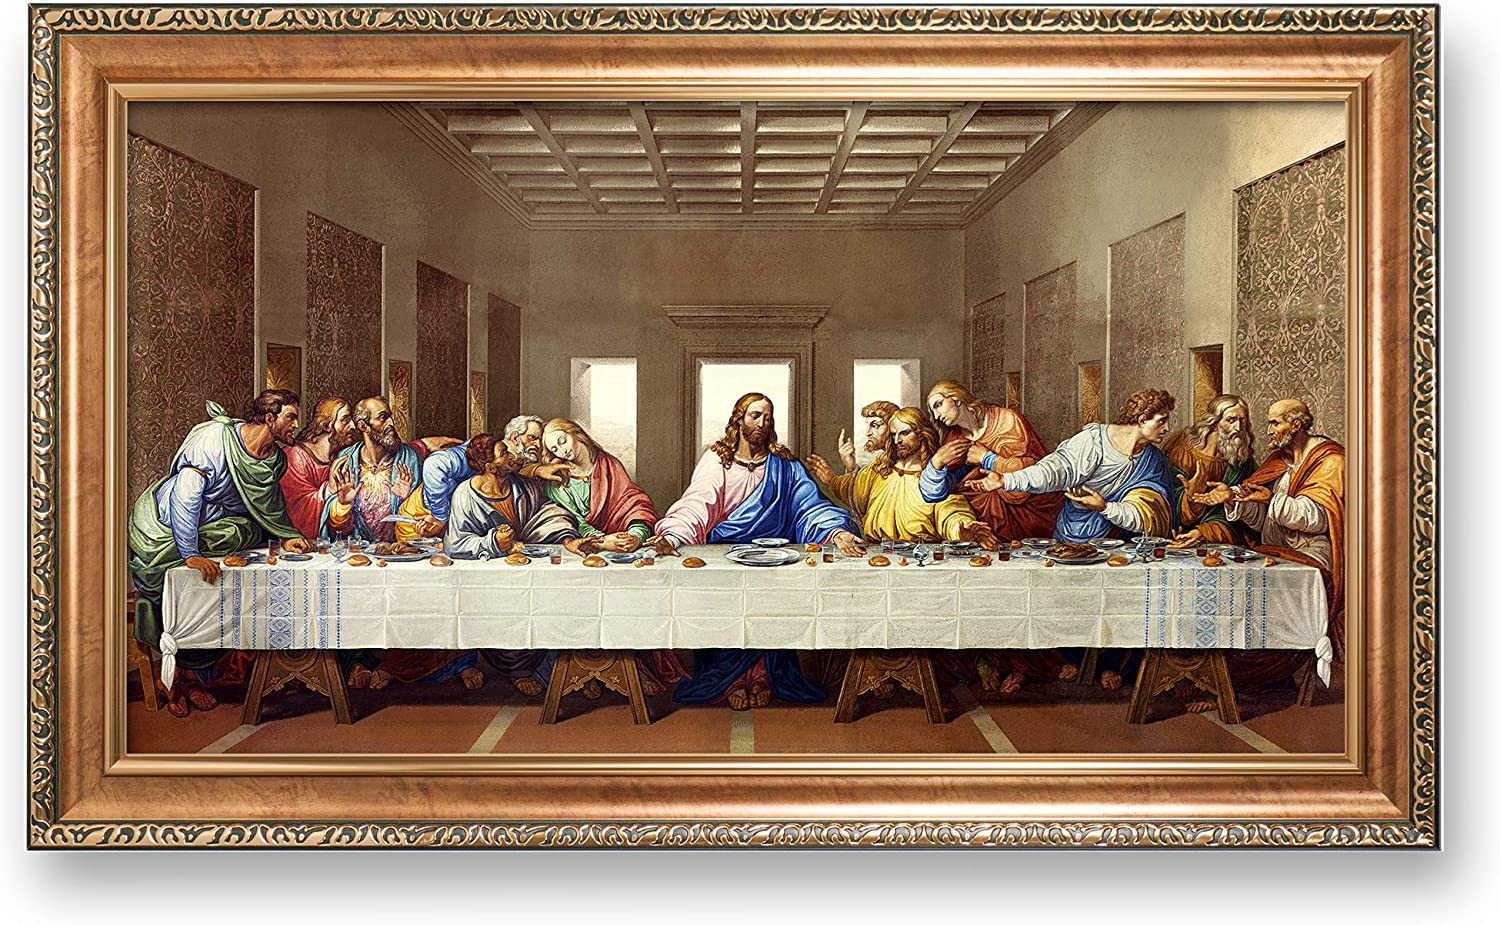 The Last Supper by Da Vinci The World Classic Art Reproductions,Giclee Prints Framed WallArt for Home Decor,Image Size:30x16 inches,Italy Style Luxurious Gold Embossing Framed Size:34.5x20.5 inchs